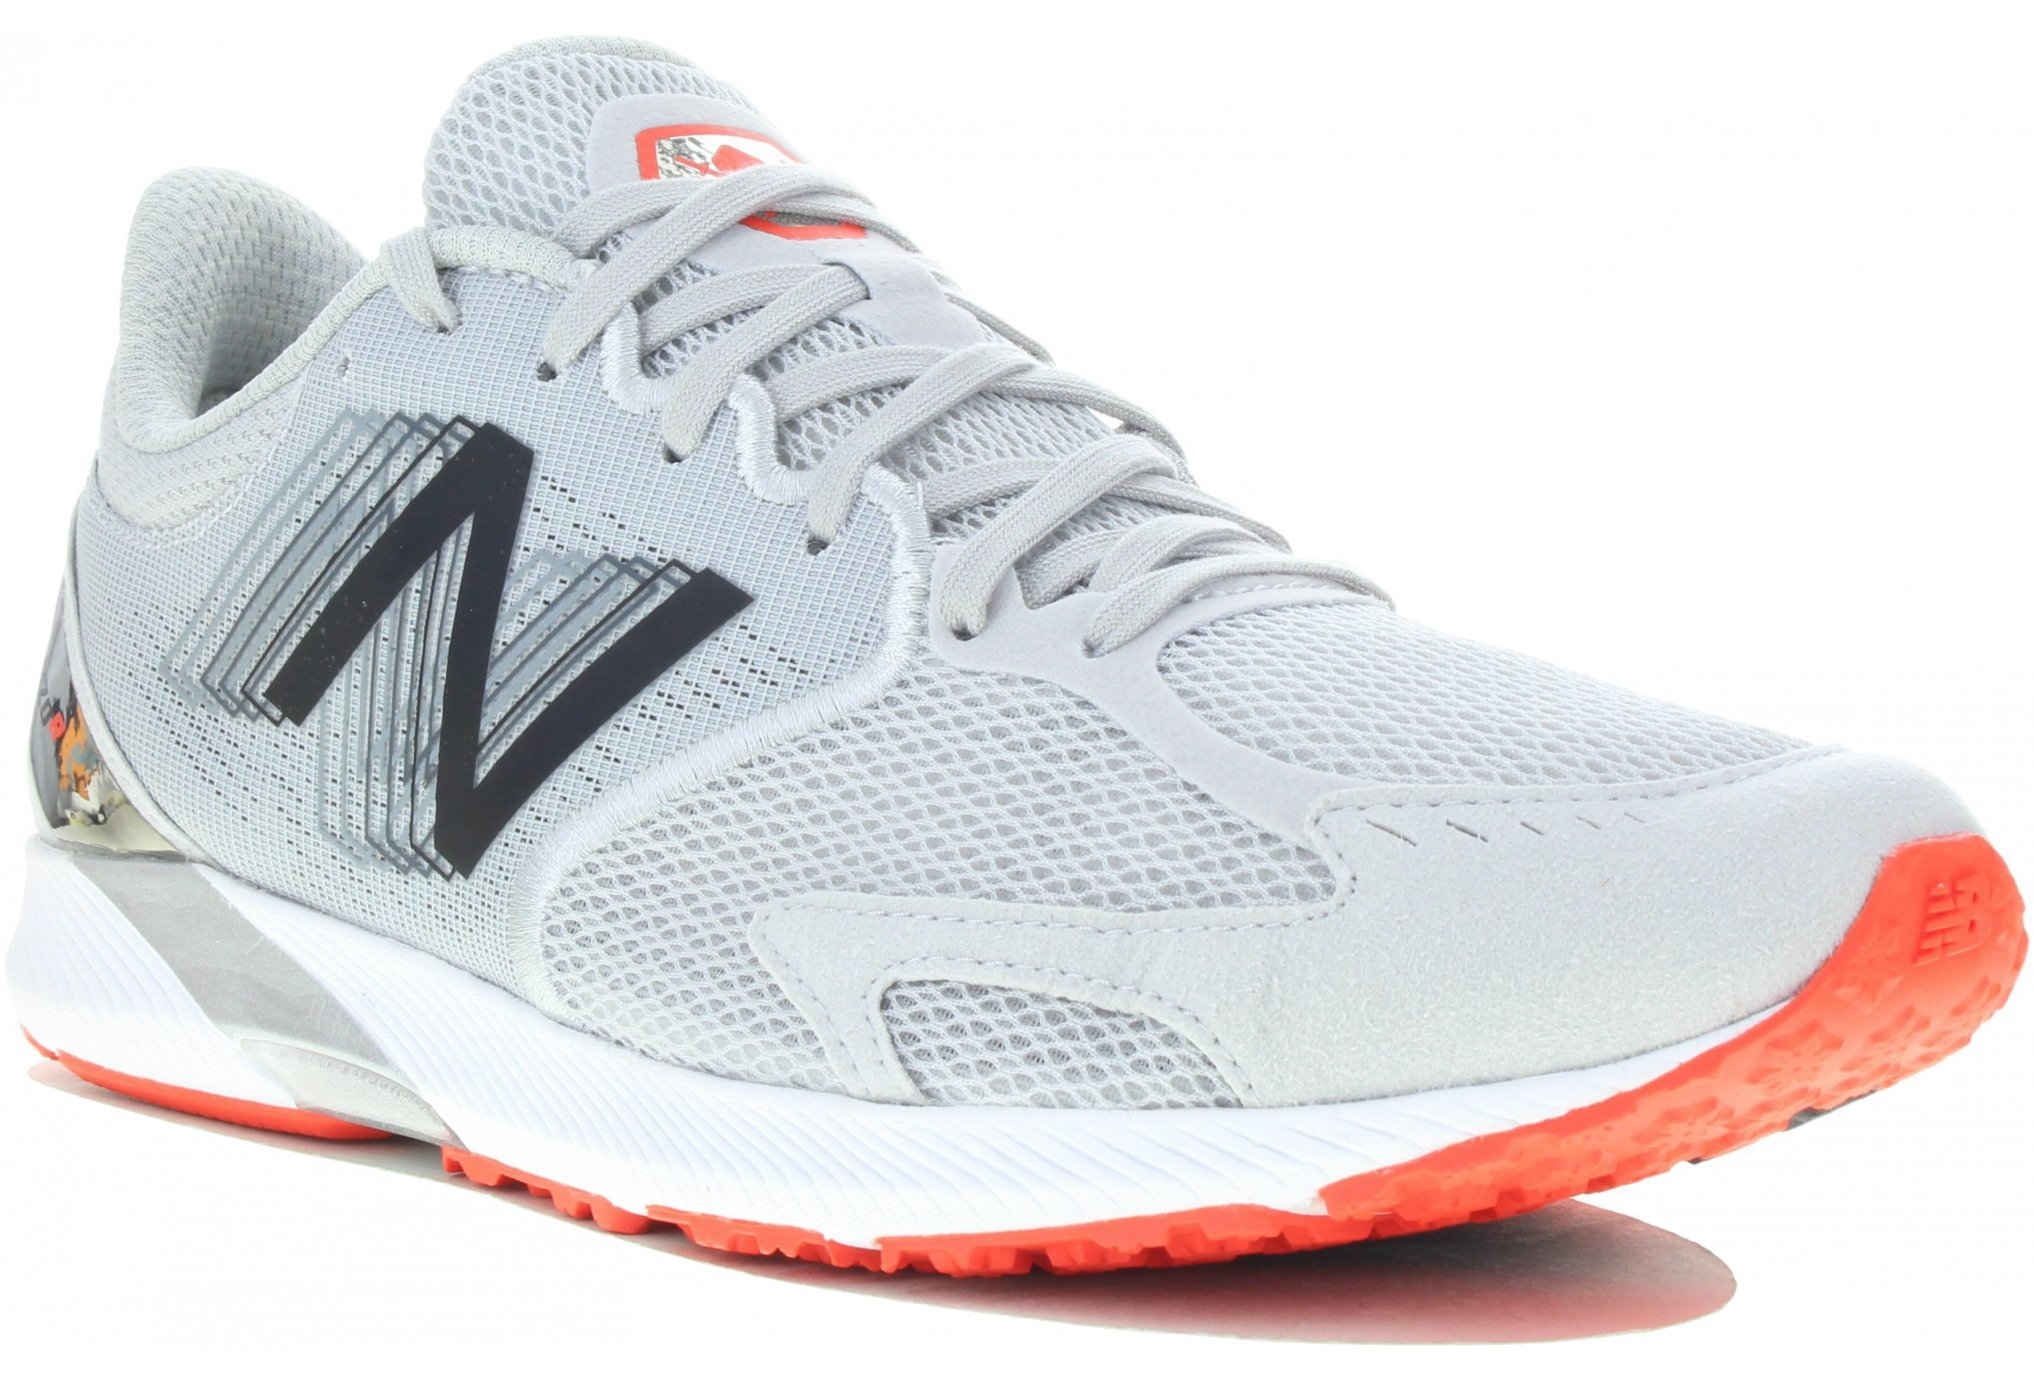 New Balance Hanzo R V3 Chaussures homme